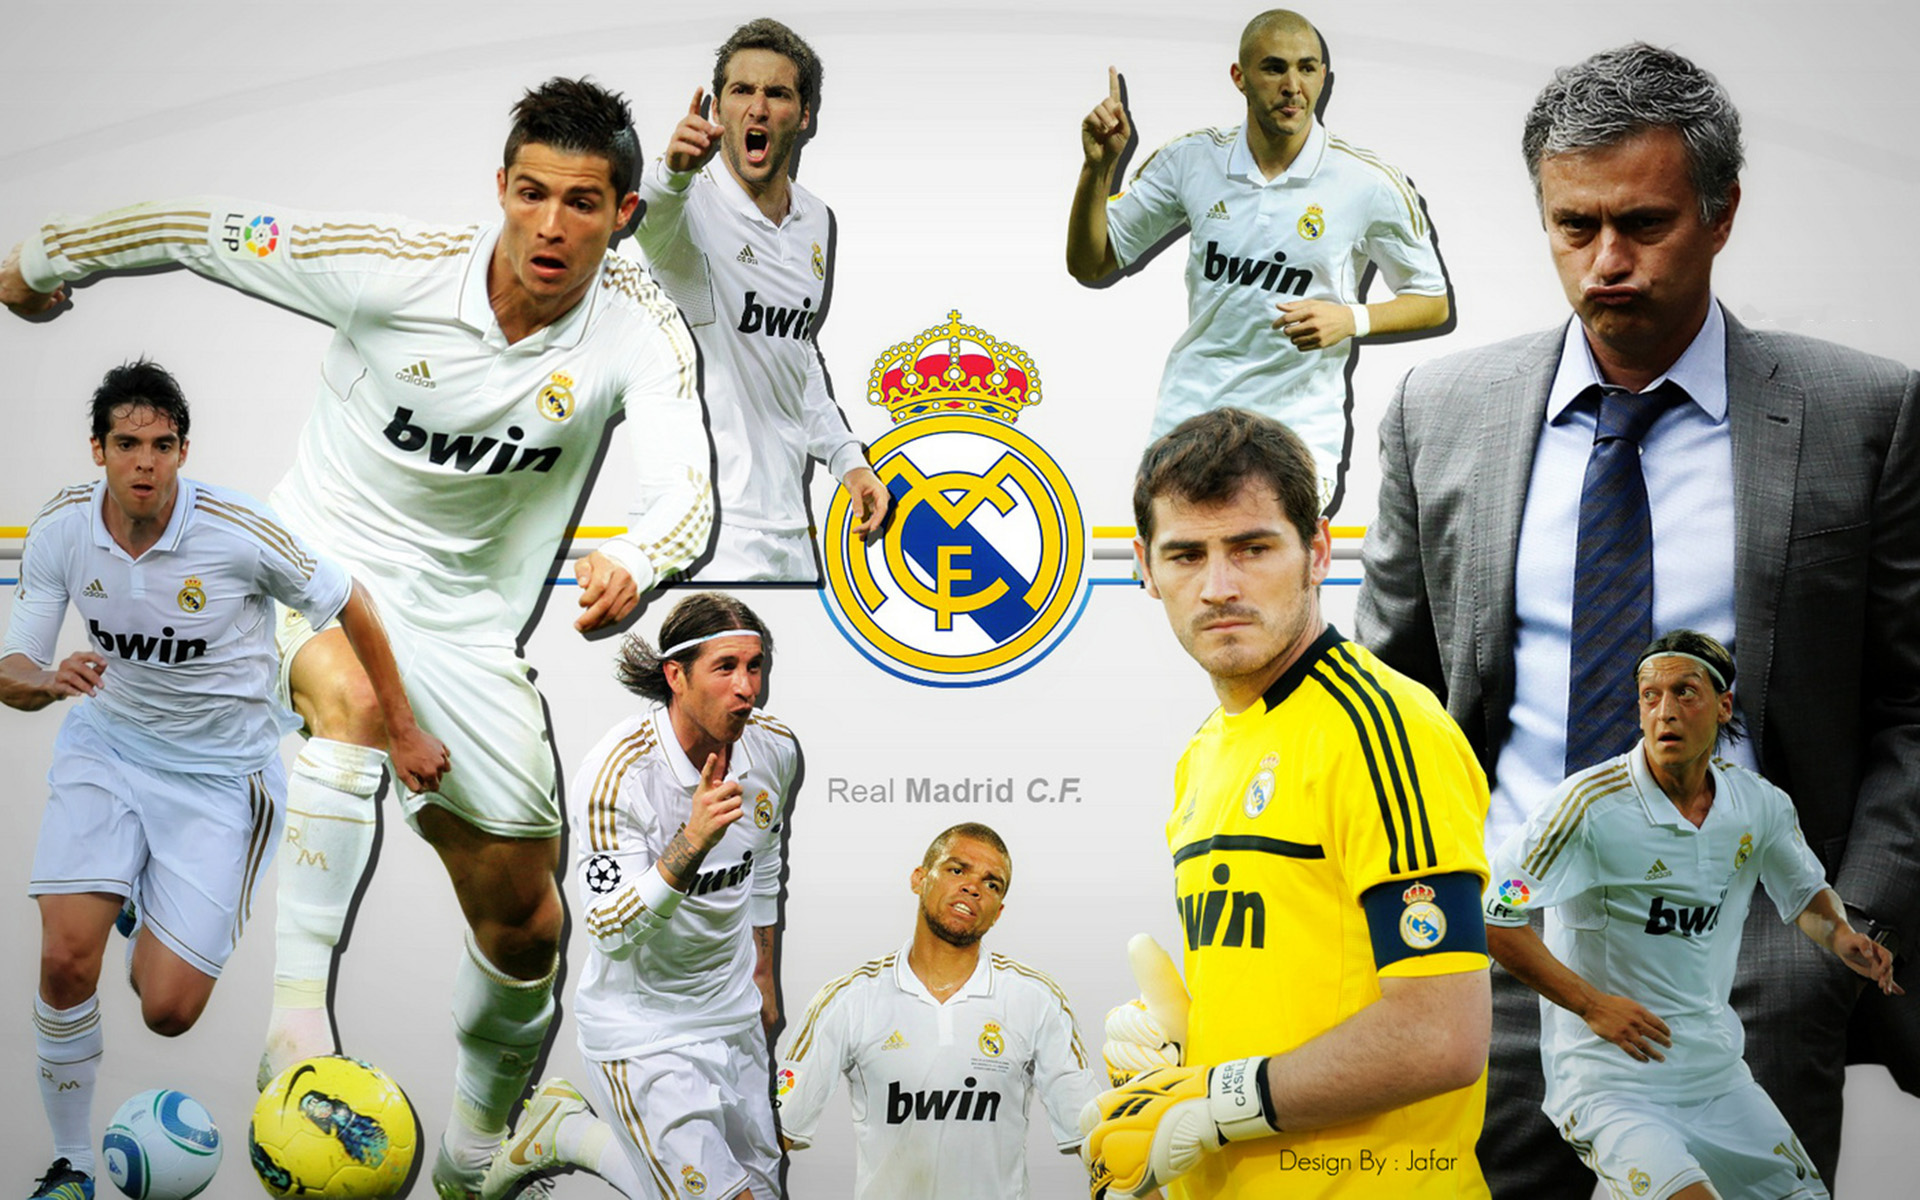 wallpaper hd equipo real madrid 2012